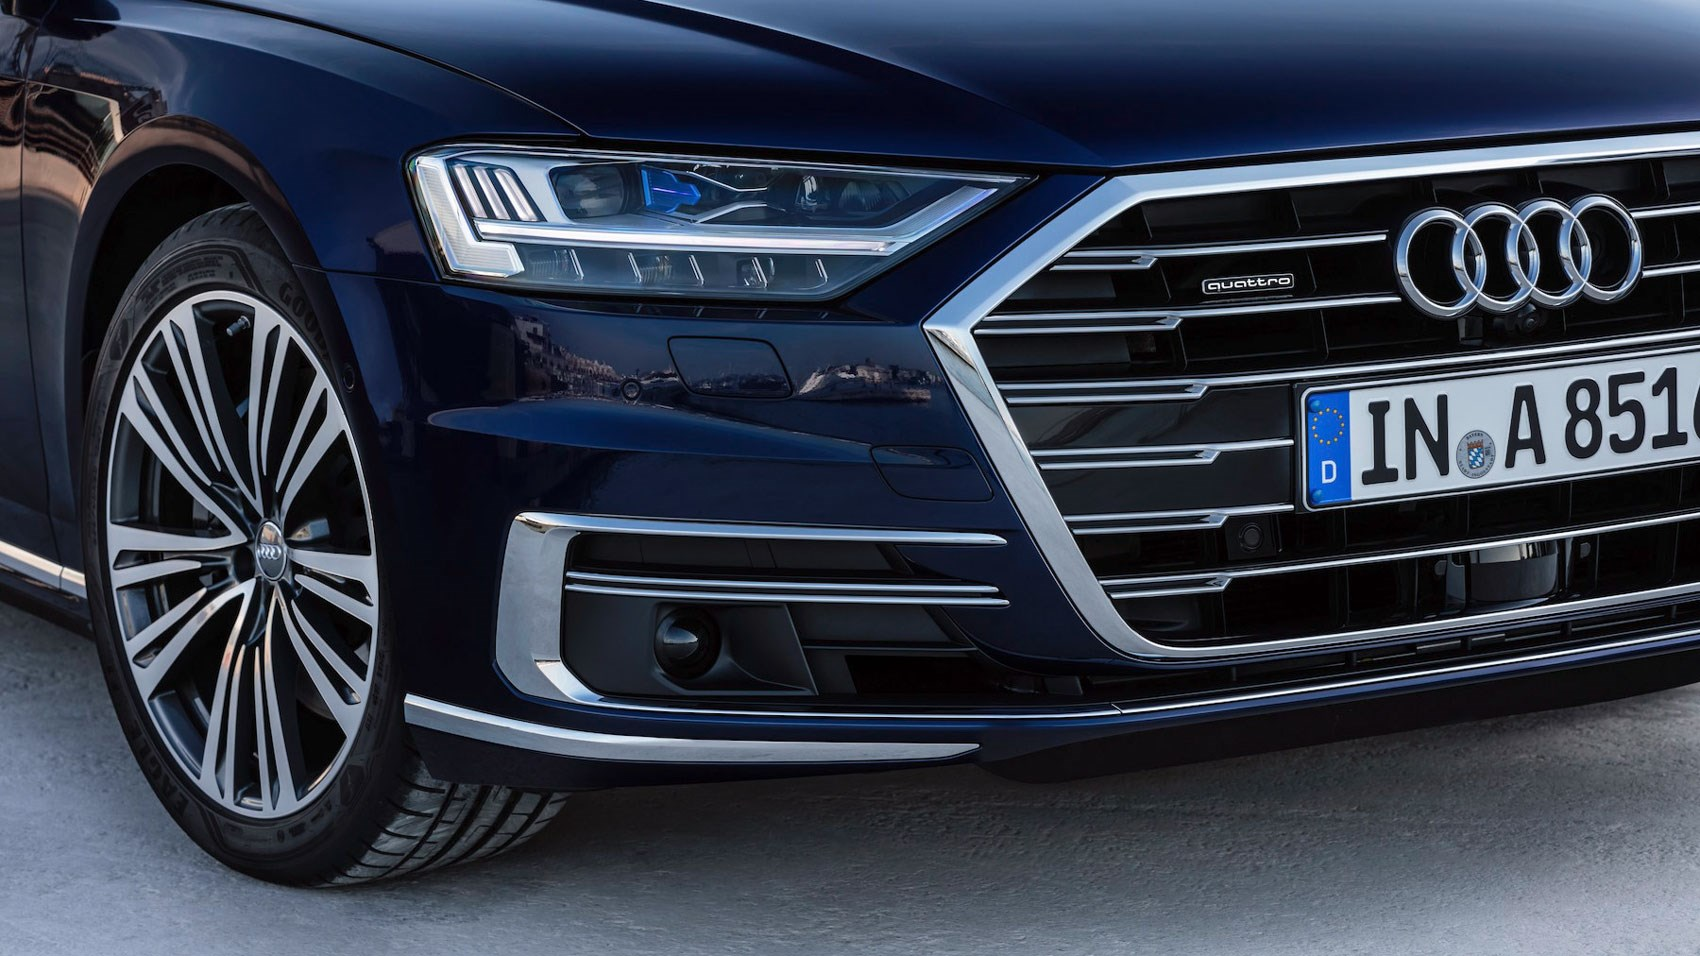 Audi A7 Sportback revealed: Here's all you need to know